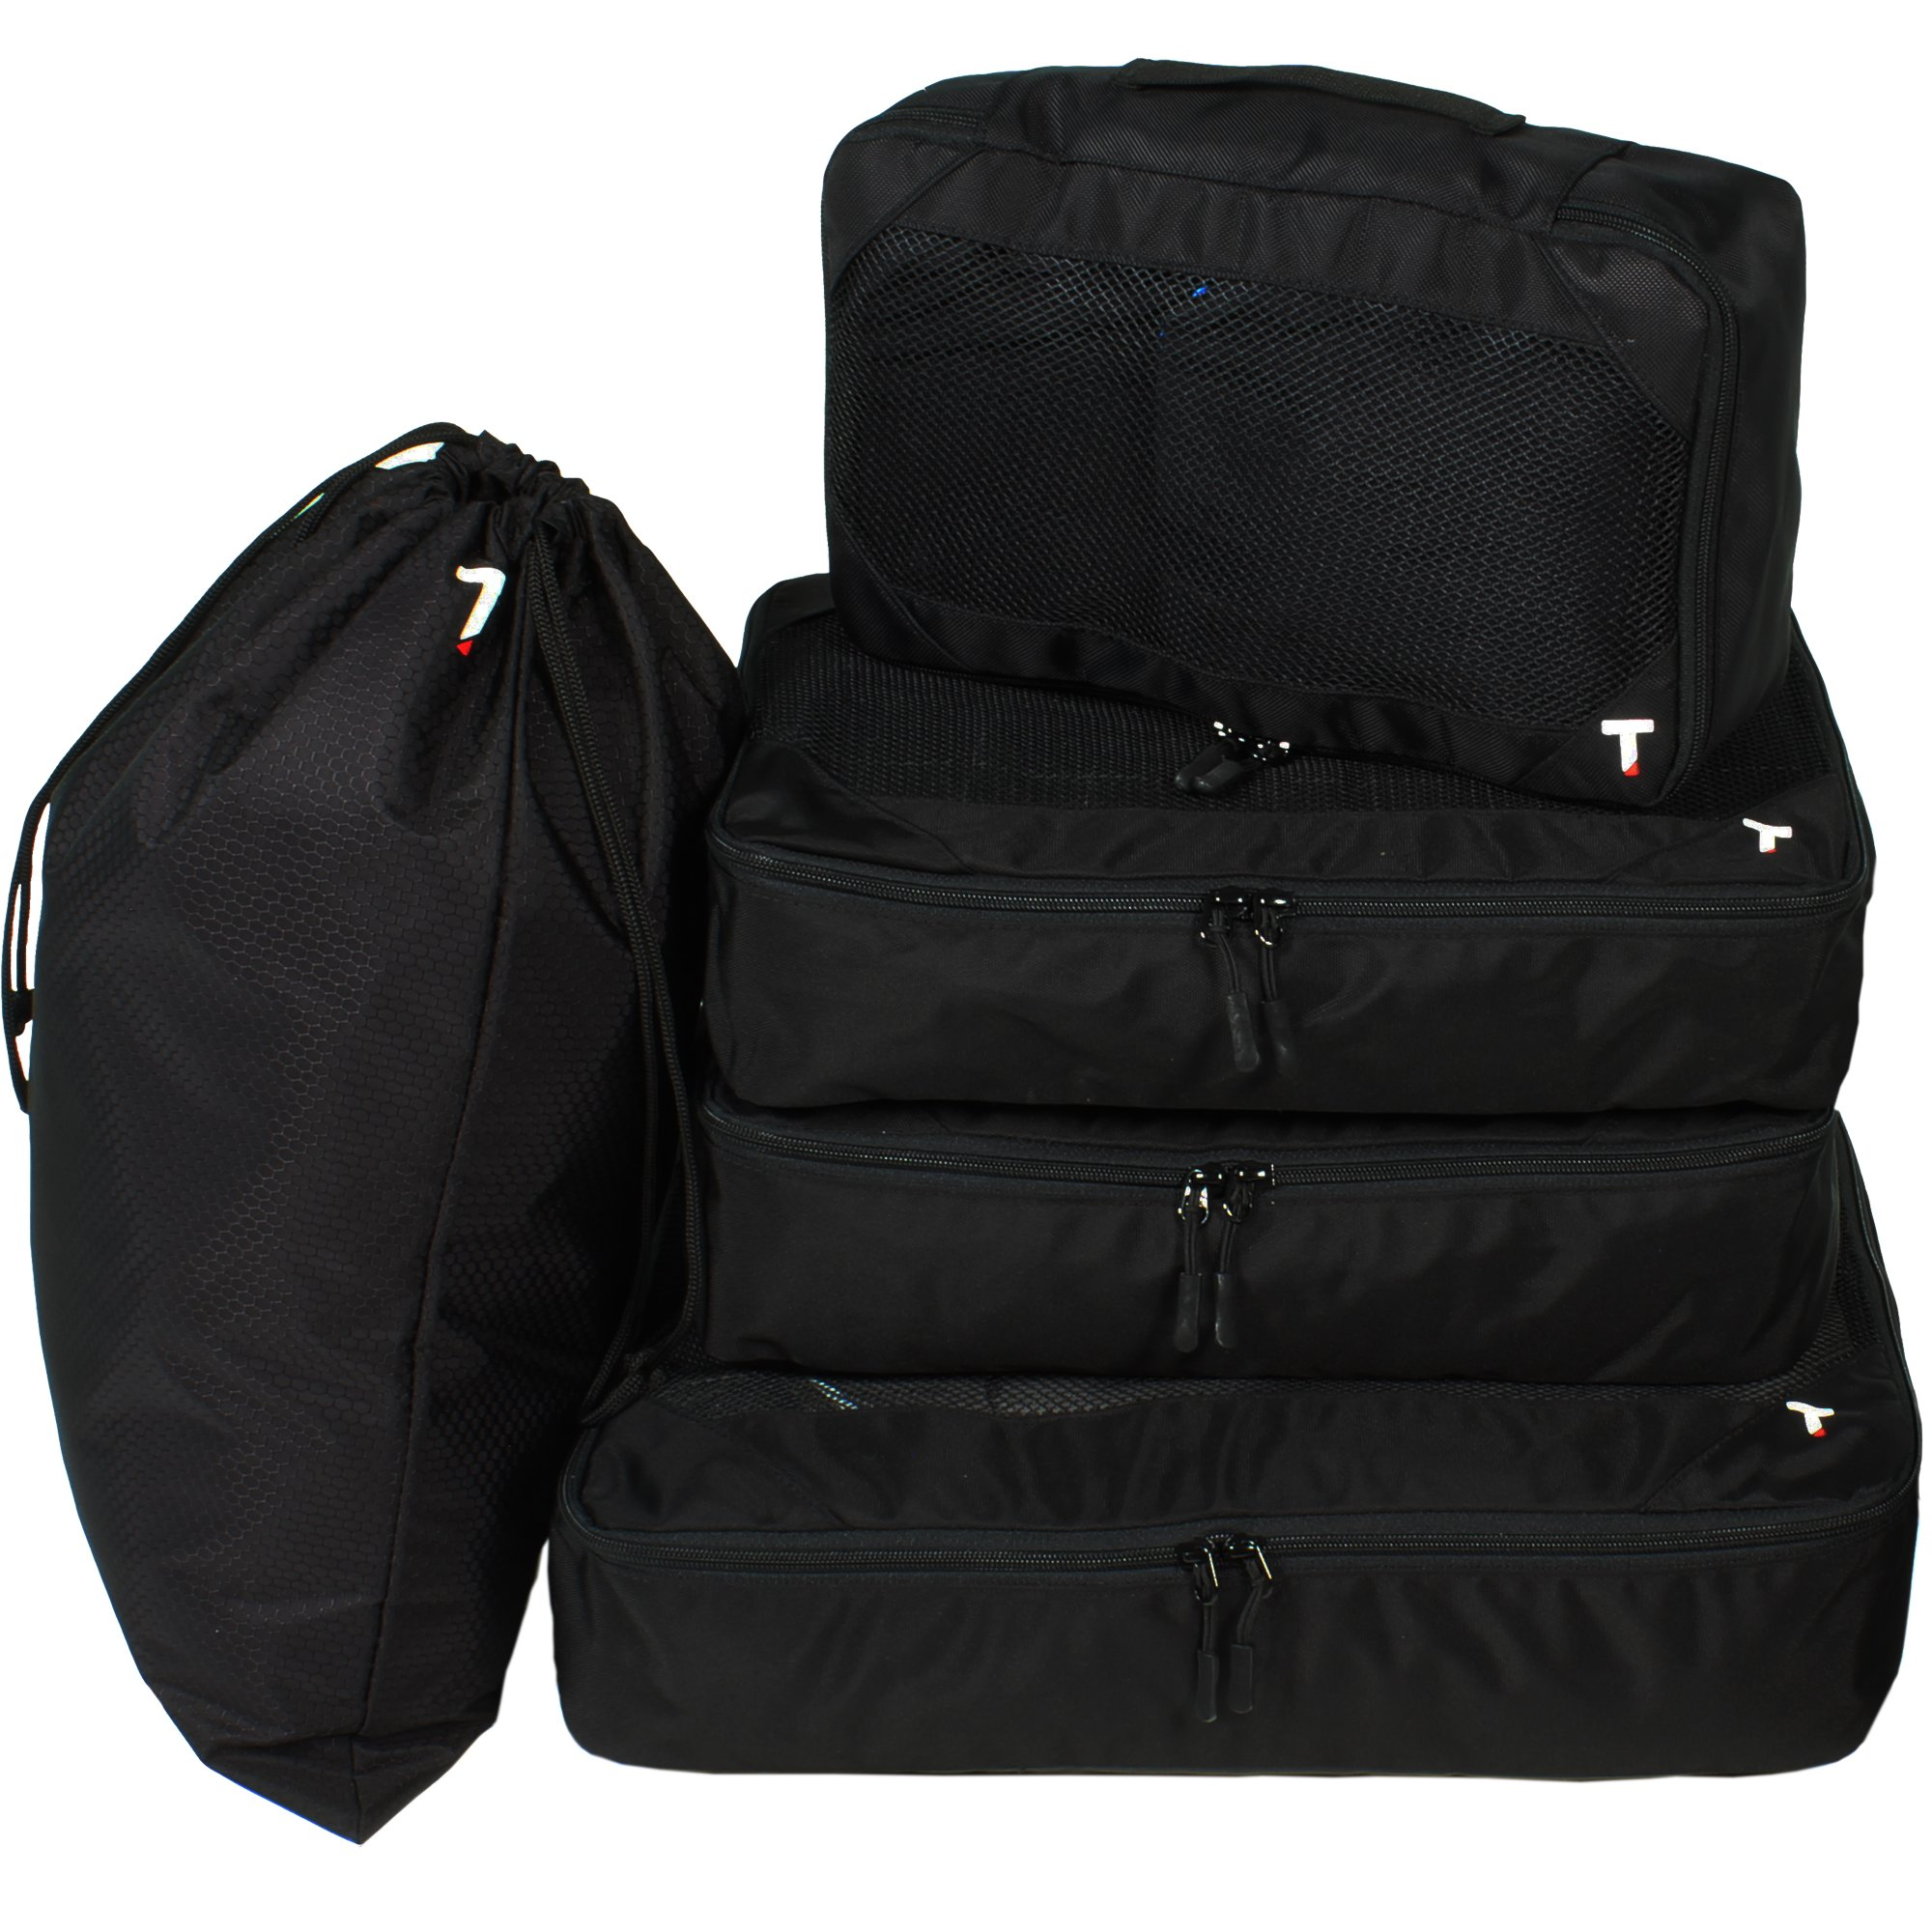 5pc Packing Cubes and Laundry Bag Set - Carryon Size